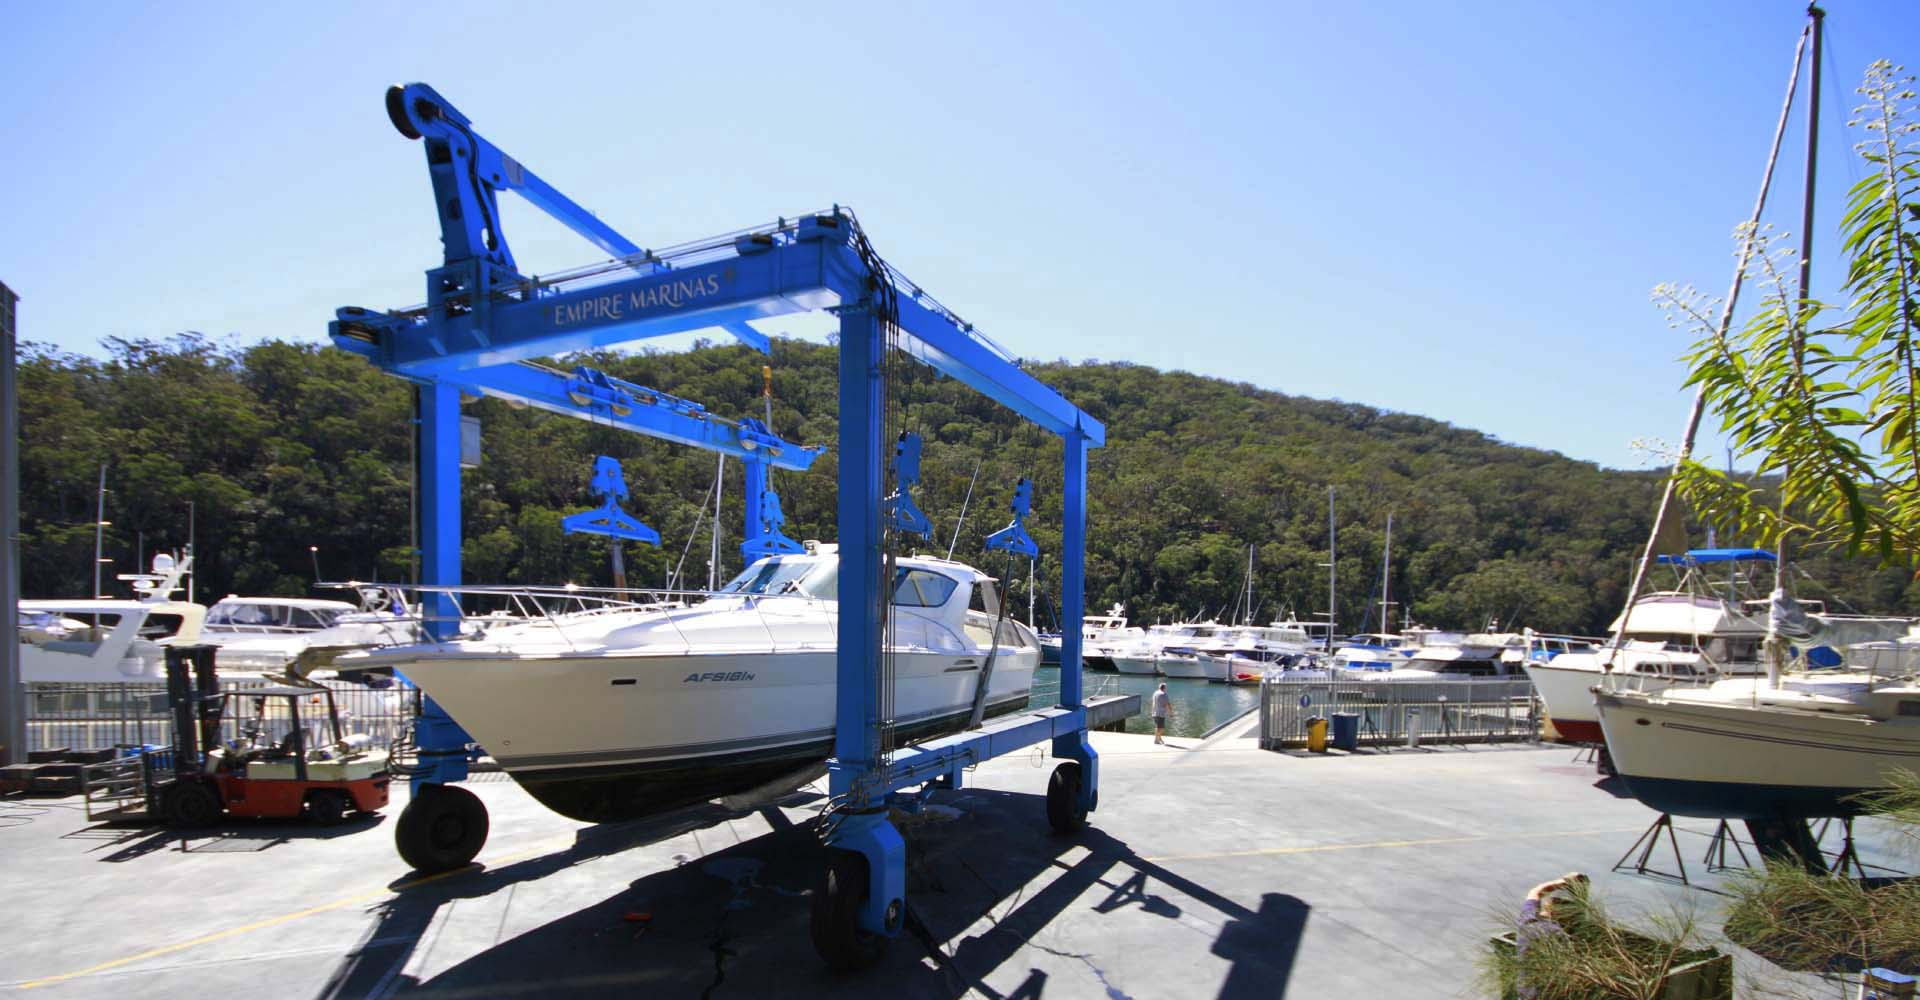 Antifoul services at Empire Marinas